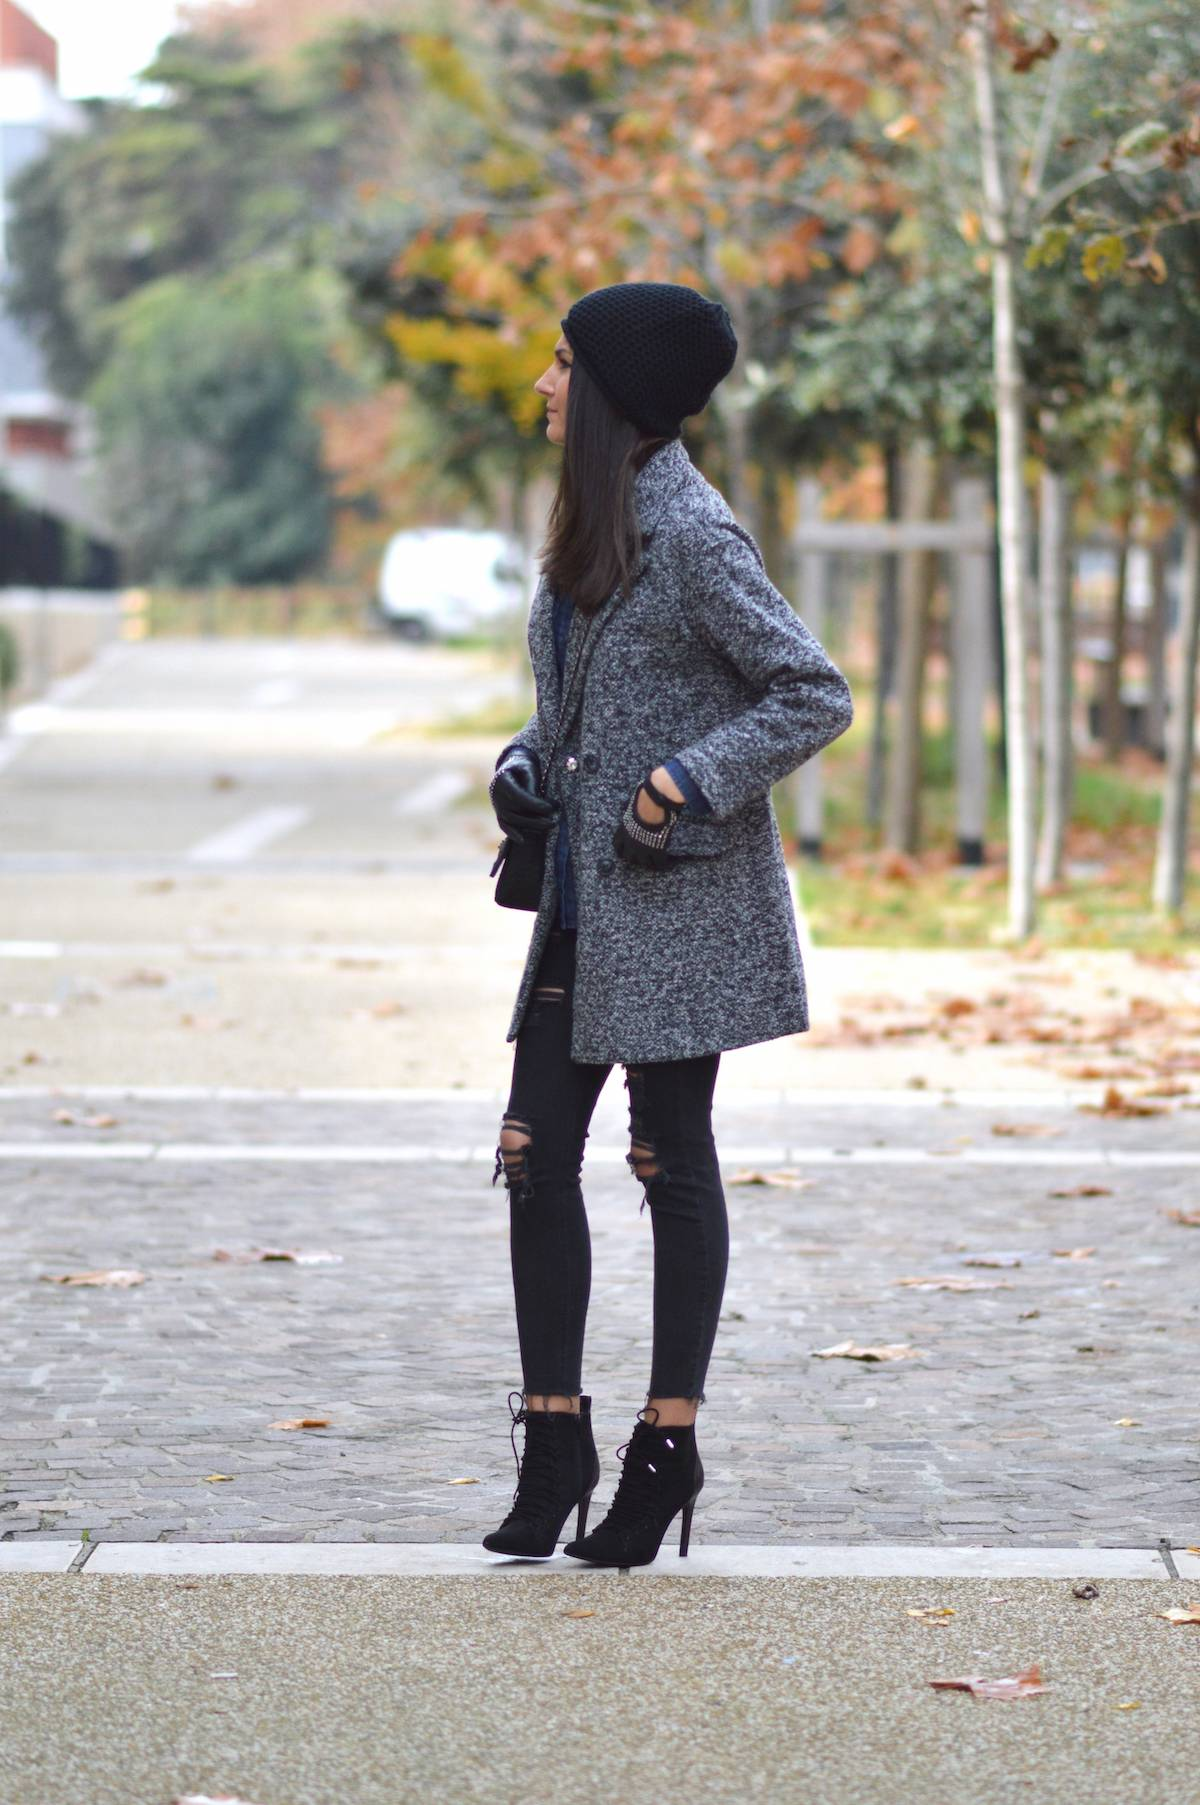 A pair of stiletto heel ankle boots can really add edge and kick to your outfit! Federica L. wears a pair of lace up stilettos with distressed denim jeans, a casual denim shirt, and a gorgeous grey overcoat from Shein. Coat: Shein, Shirt: Codigo Basico, Jeans: Mango, Shoes/Hat: Zara, Bag: Toscandjoe.